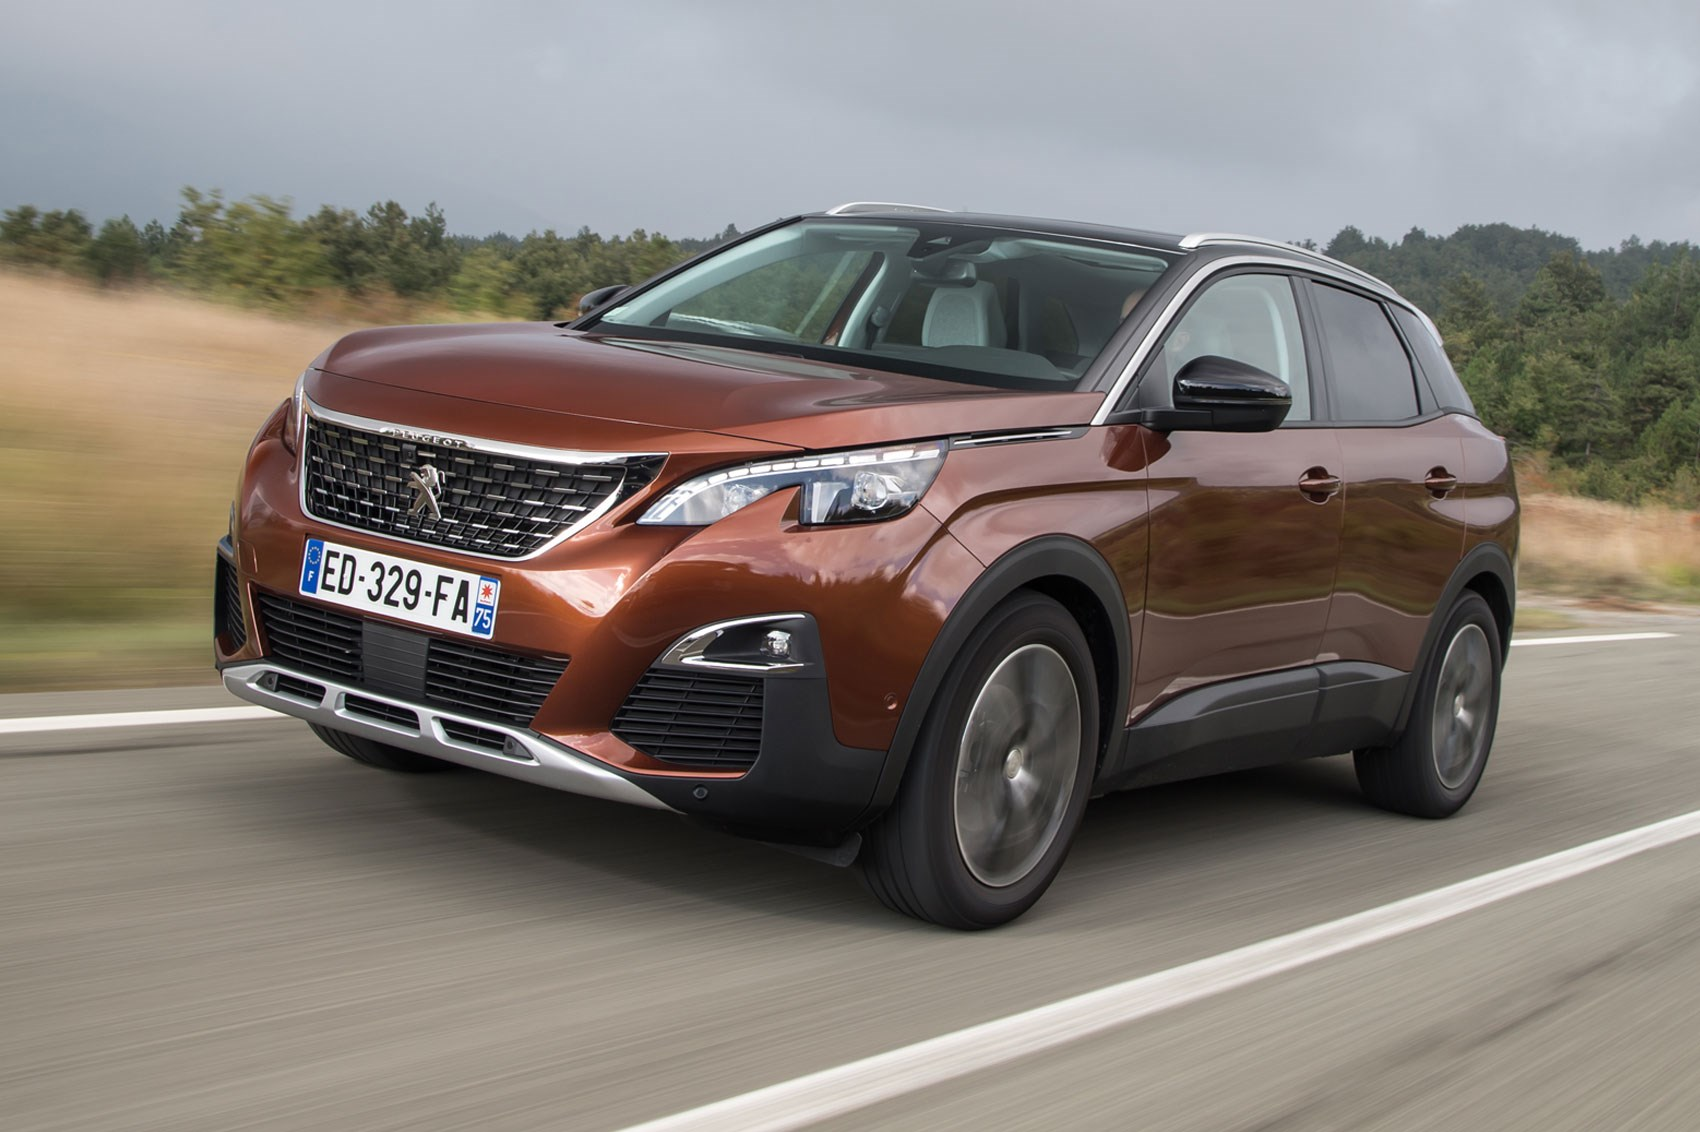 2016 Cadillac Crossover >> Peugeot 3008 1.6 BlueHDi 120 S&S Allure (2016) review by CAR Magazine